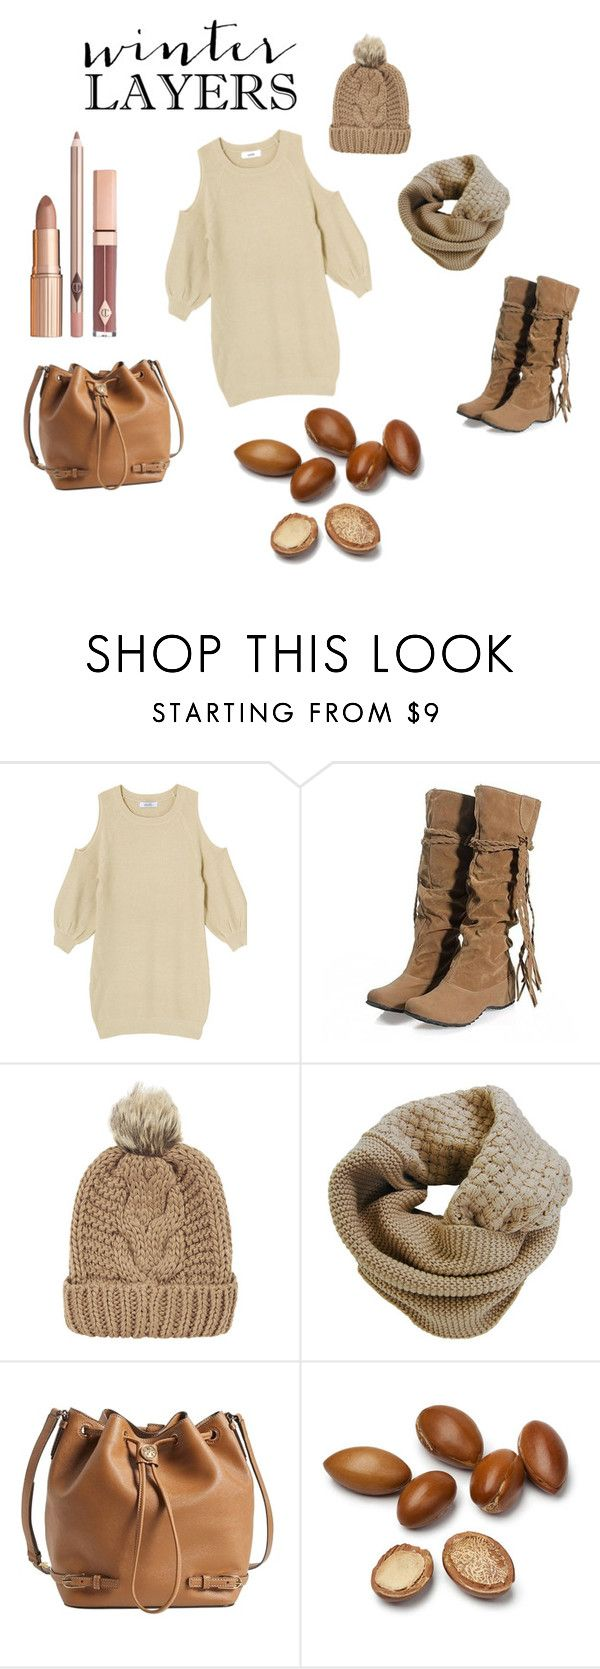 Untitled #91 by nashrinsabila on Polyvore featuring Tory Burch, Humble Chic, Chicnova Fashion, women's clothing, women's fashion, women, female, woman, misses and juniors